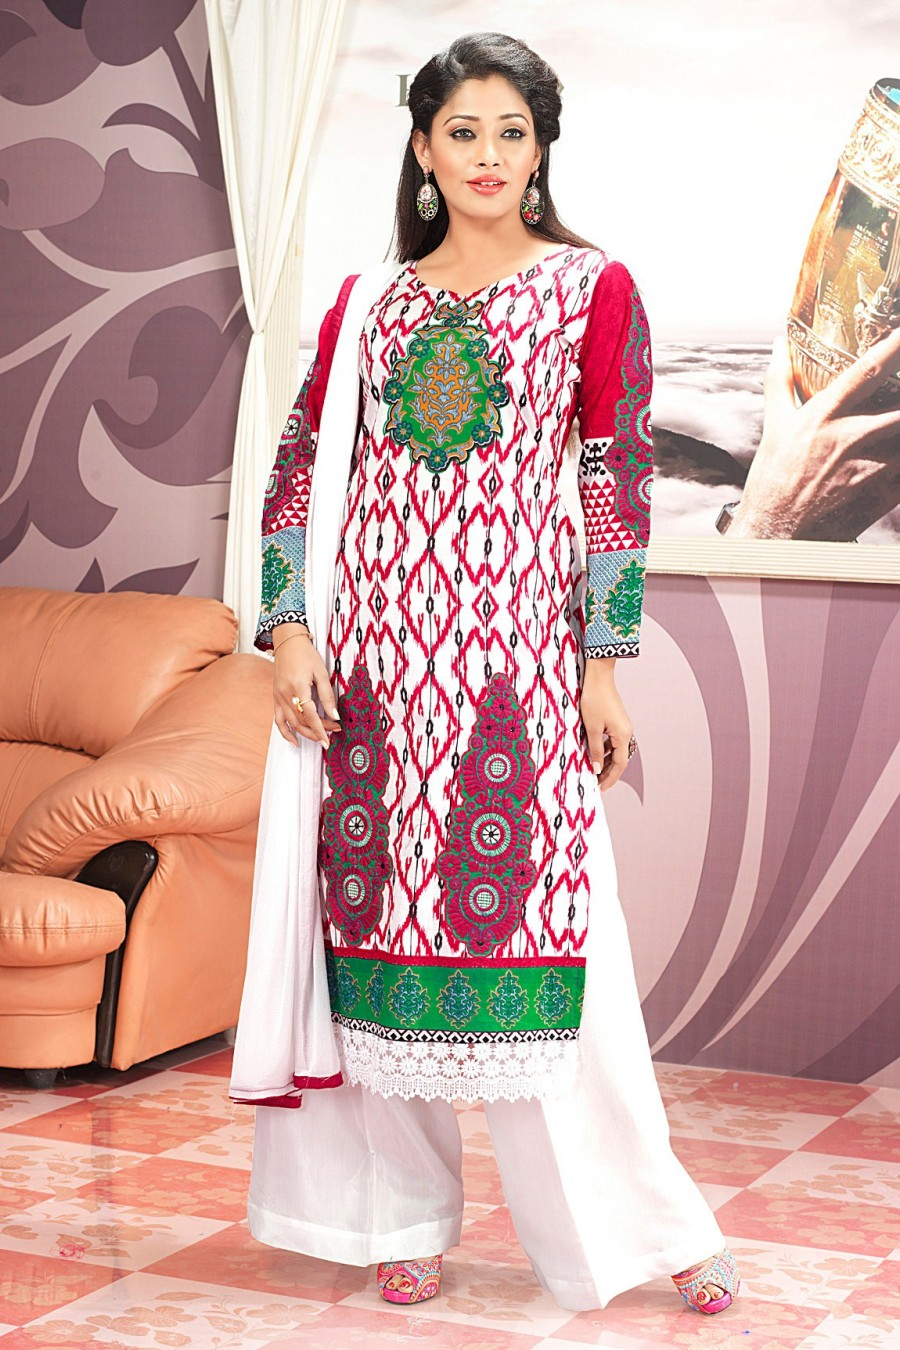 Buy White and Pink Printed Salwar Kameez with White Chiffon Dupatta Online